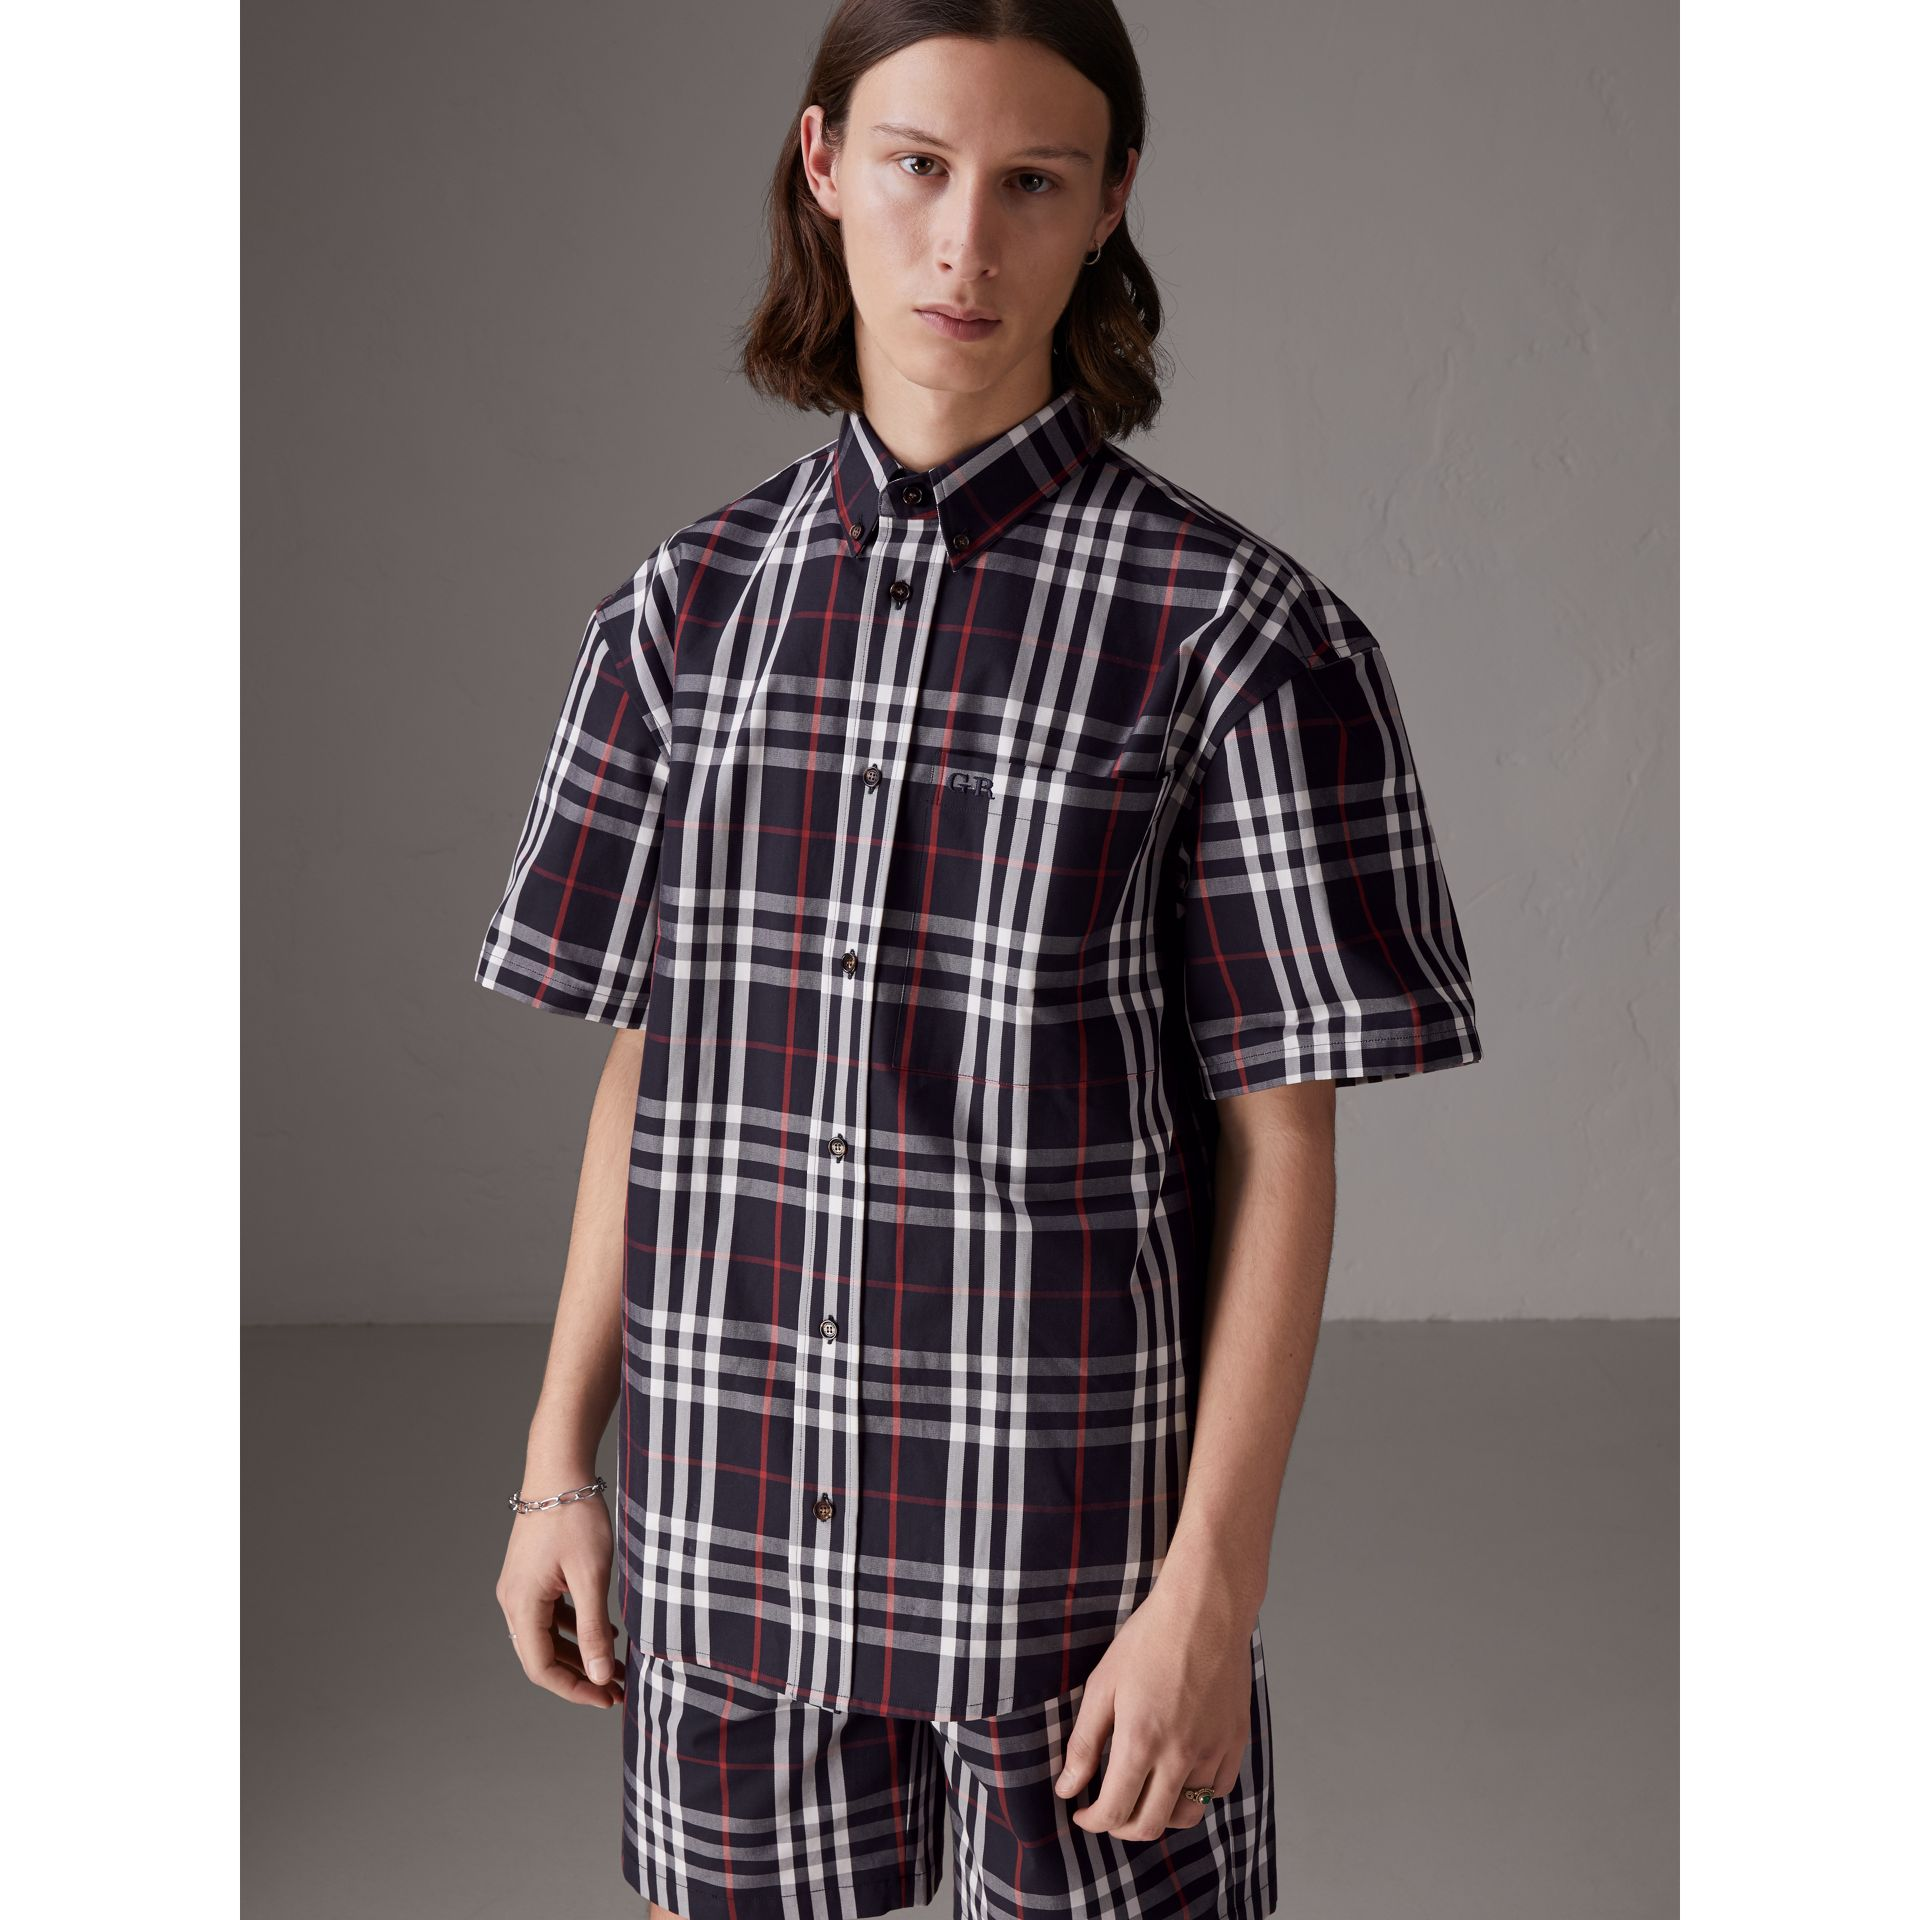 Gosha x Burberry Short-sleeve Check Shirt in Navy - Men | Burberry - gallery image 0